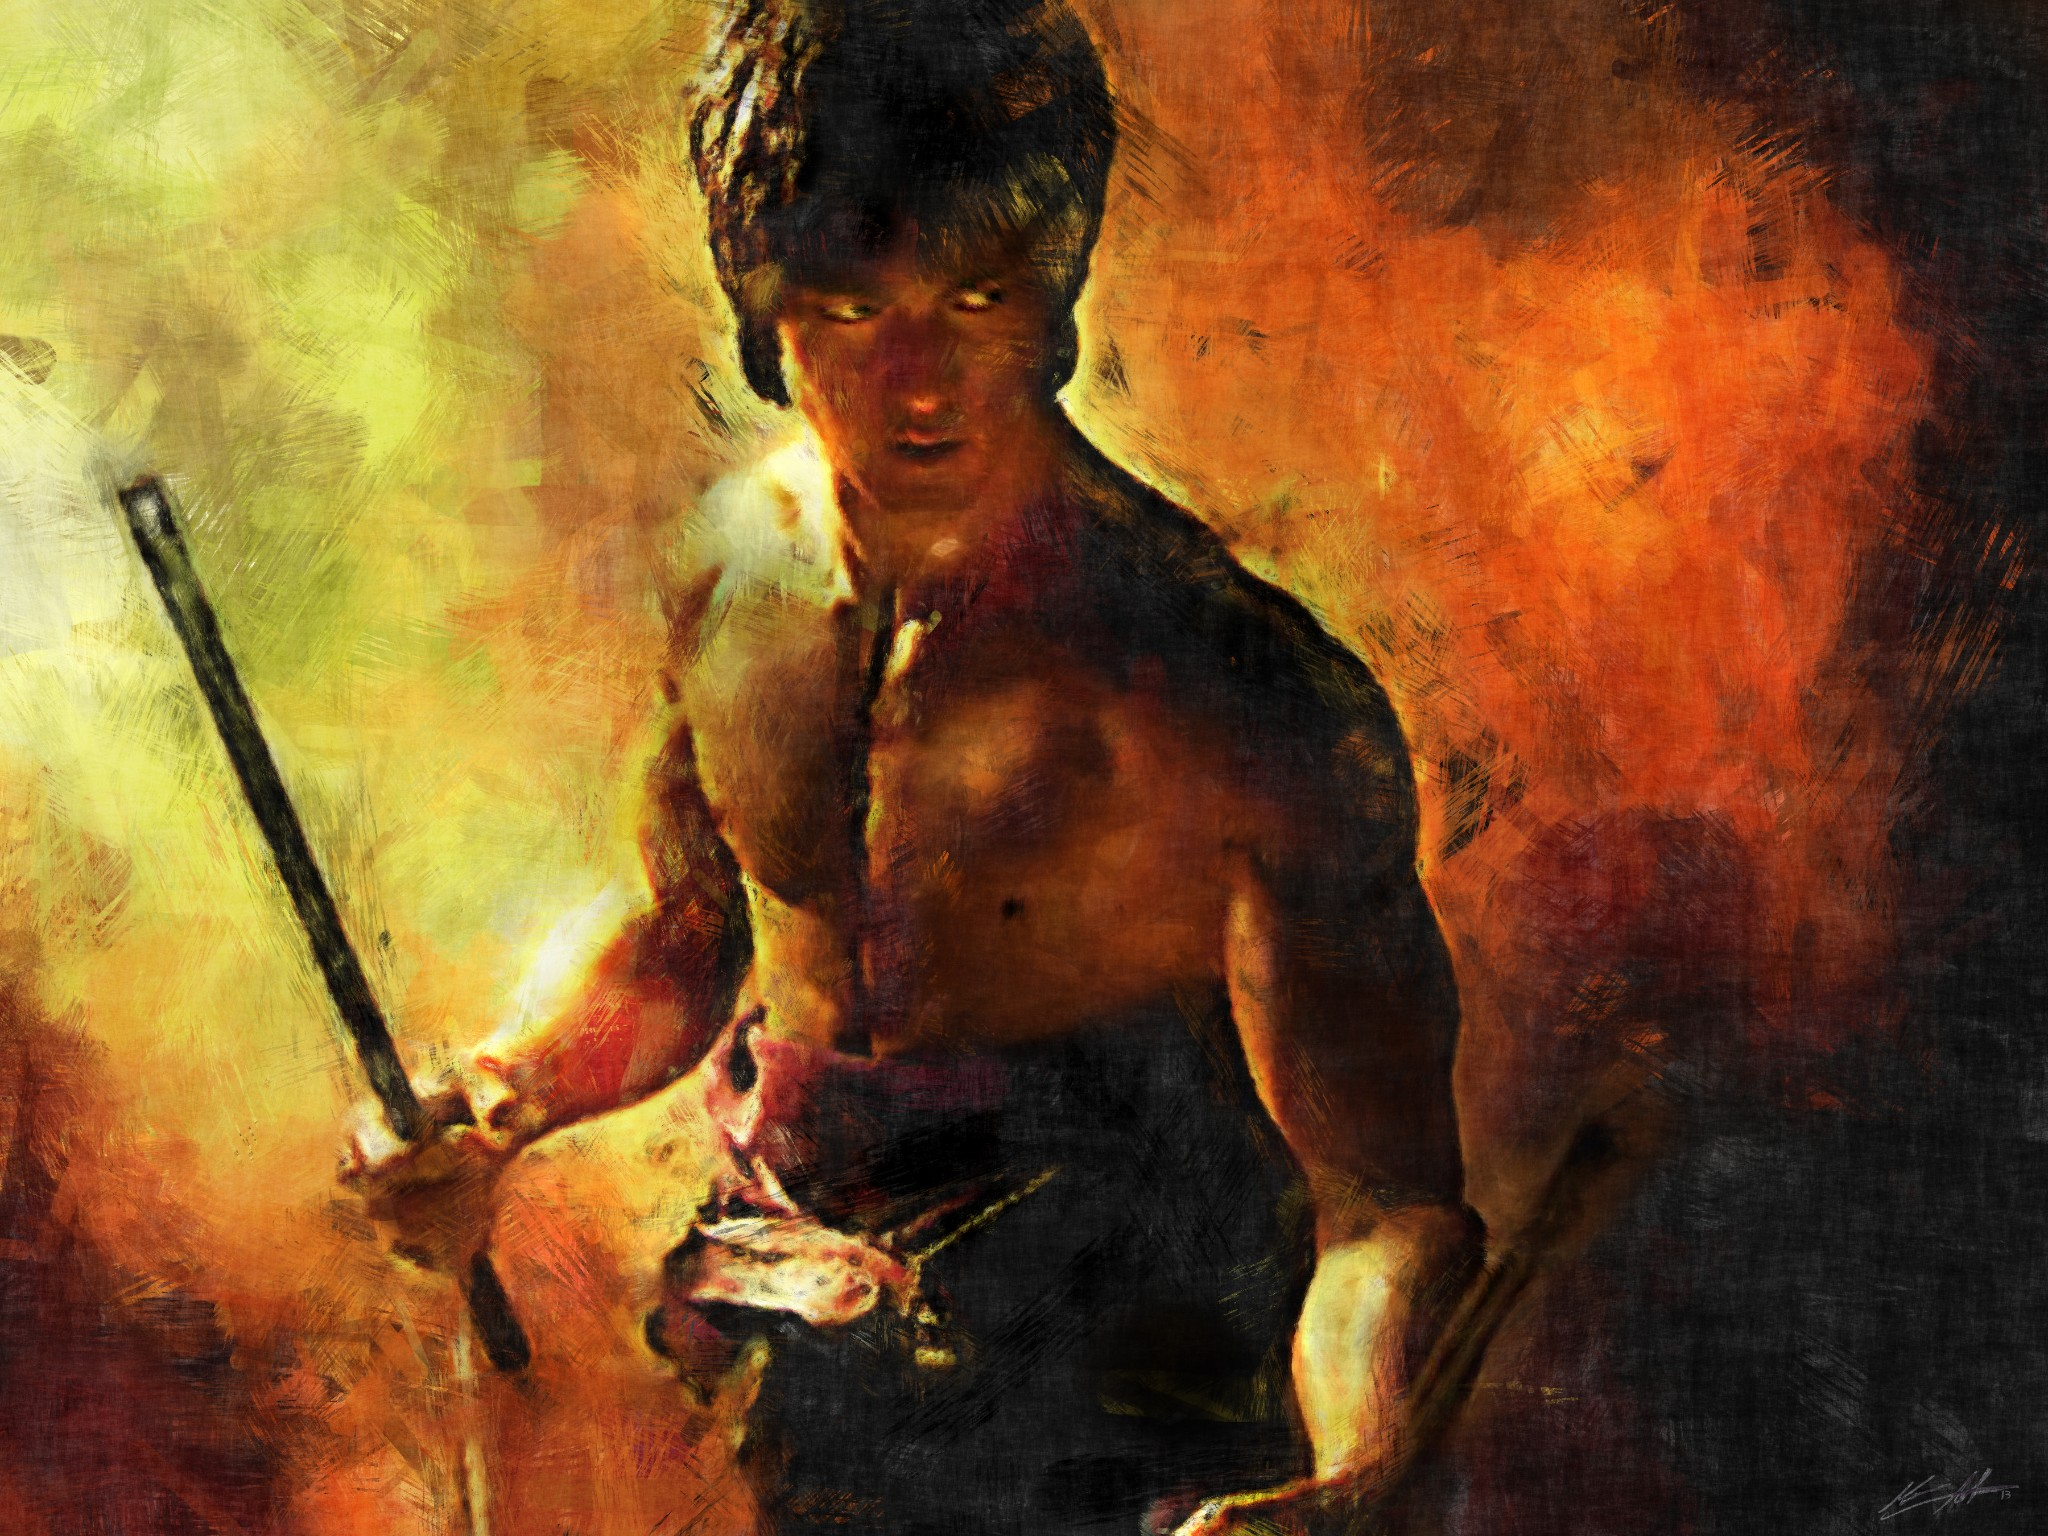 My biggest martial arts inspiration is now my latest digital painting inspiration.